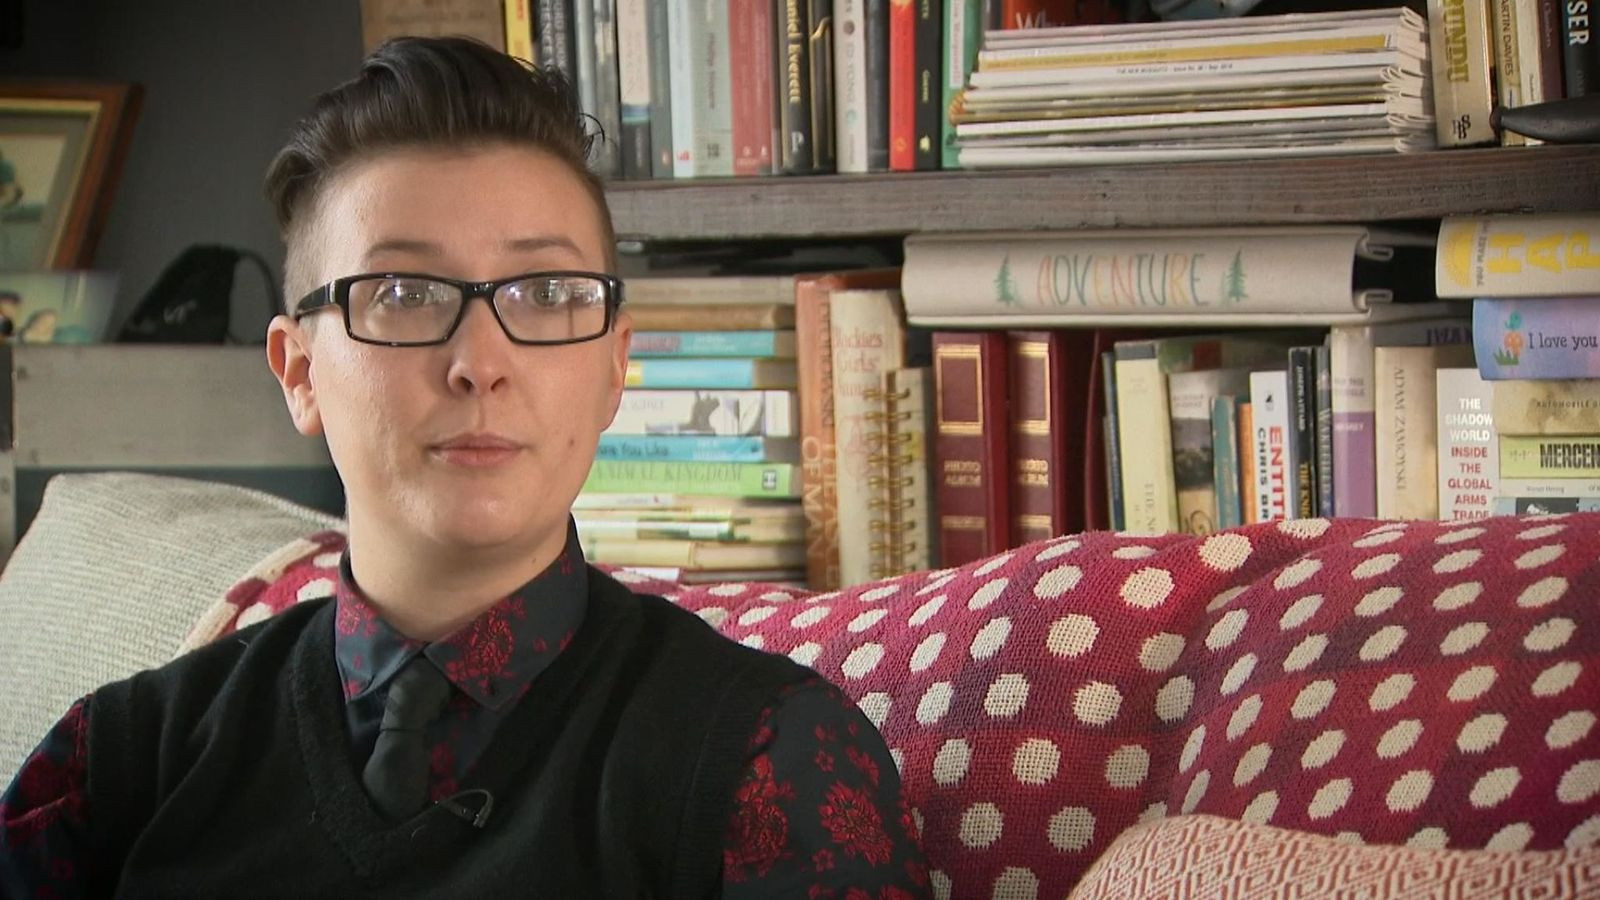 Hundreds of young transgender people seeking help to return to their original sex